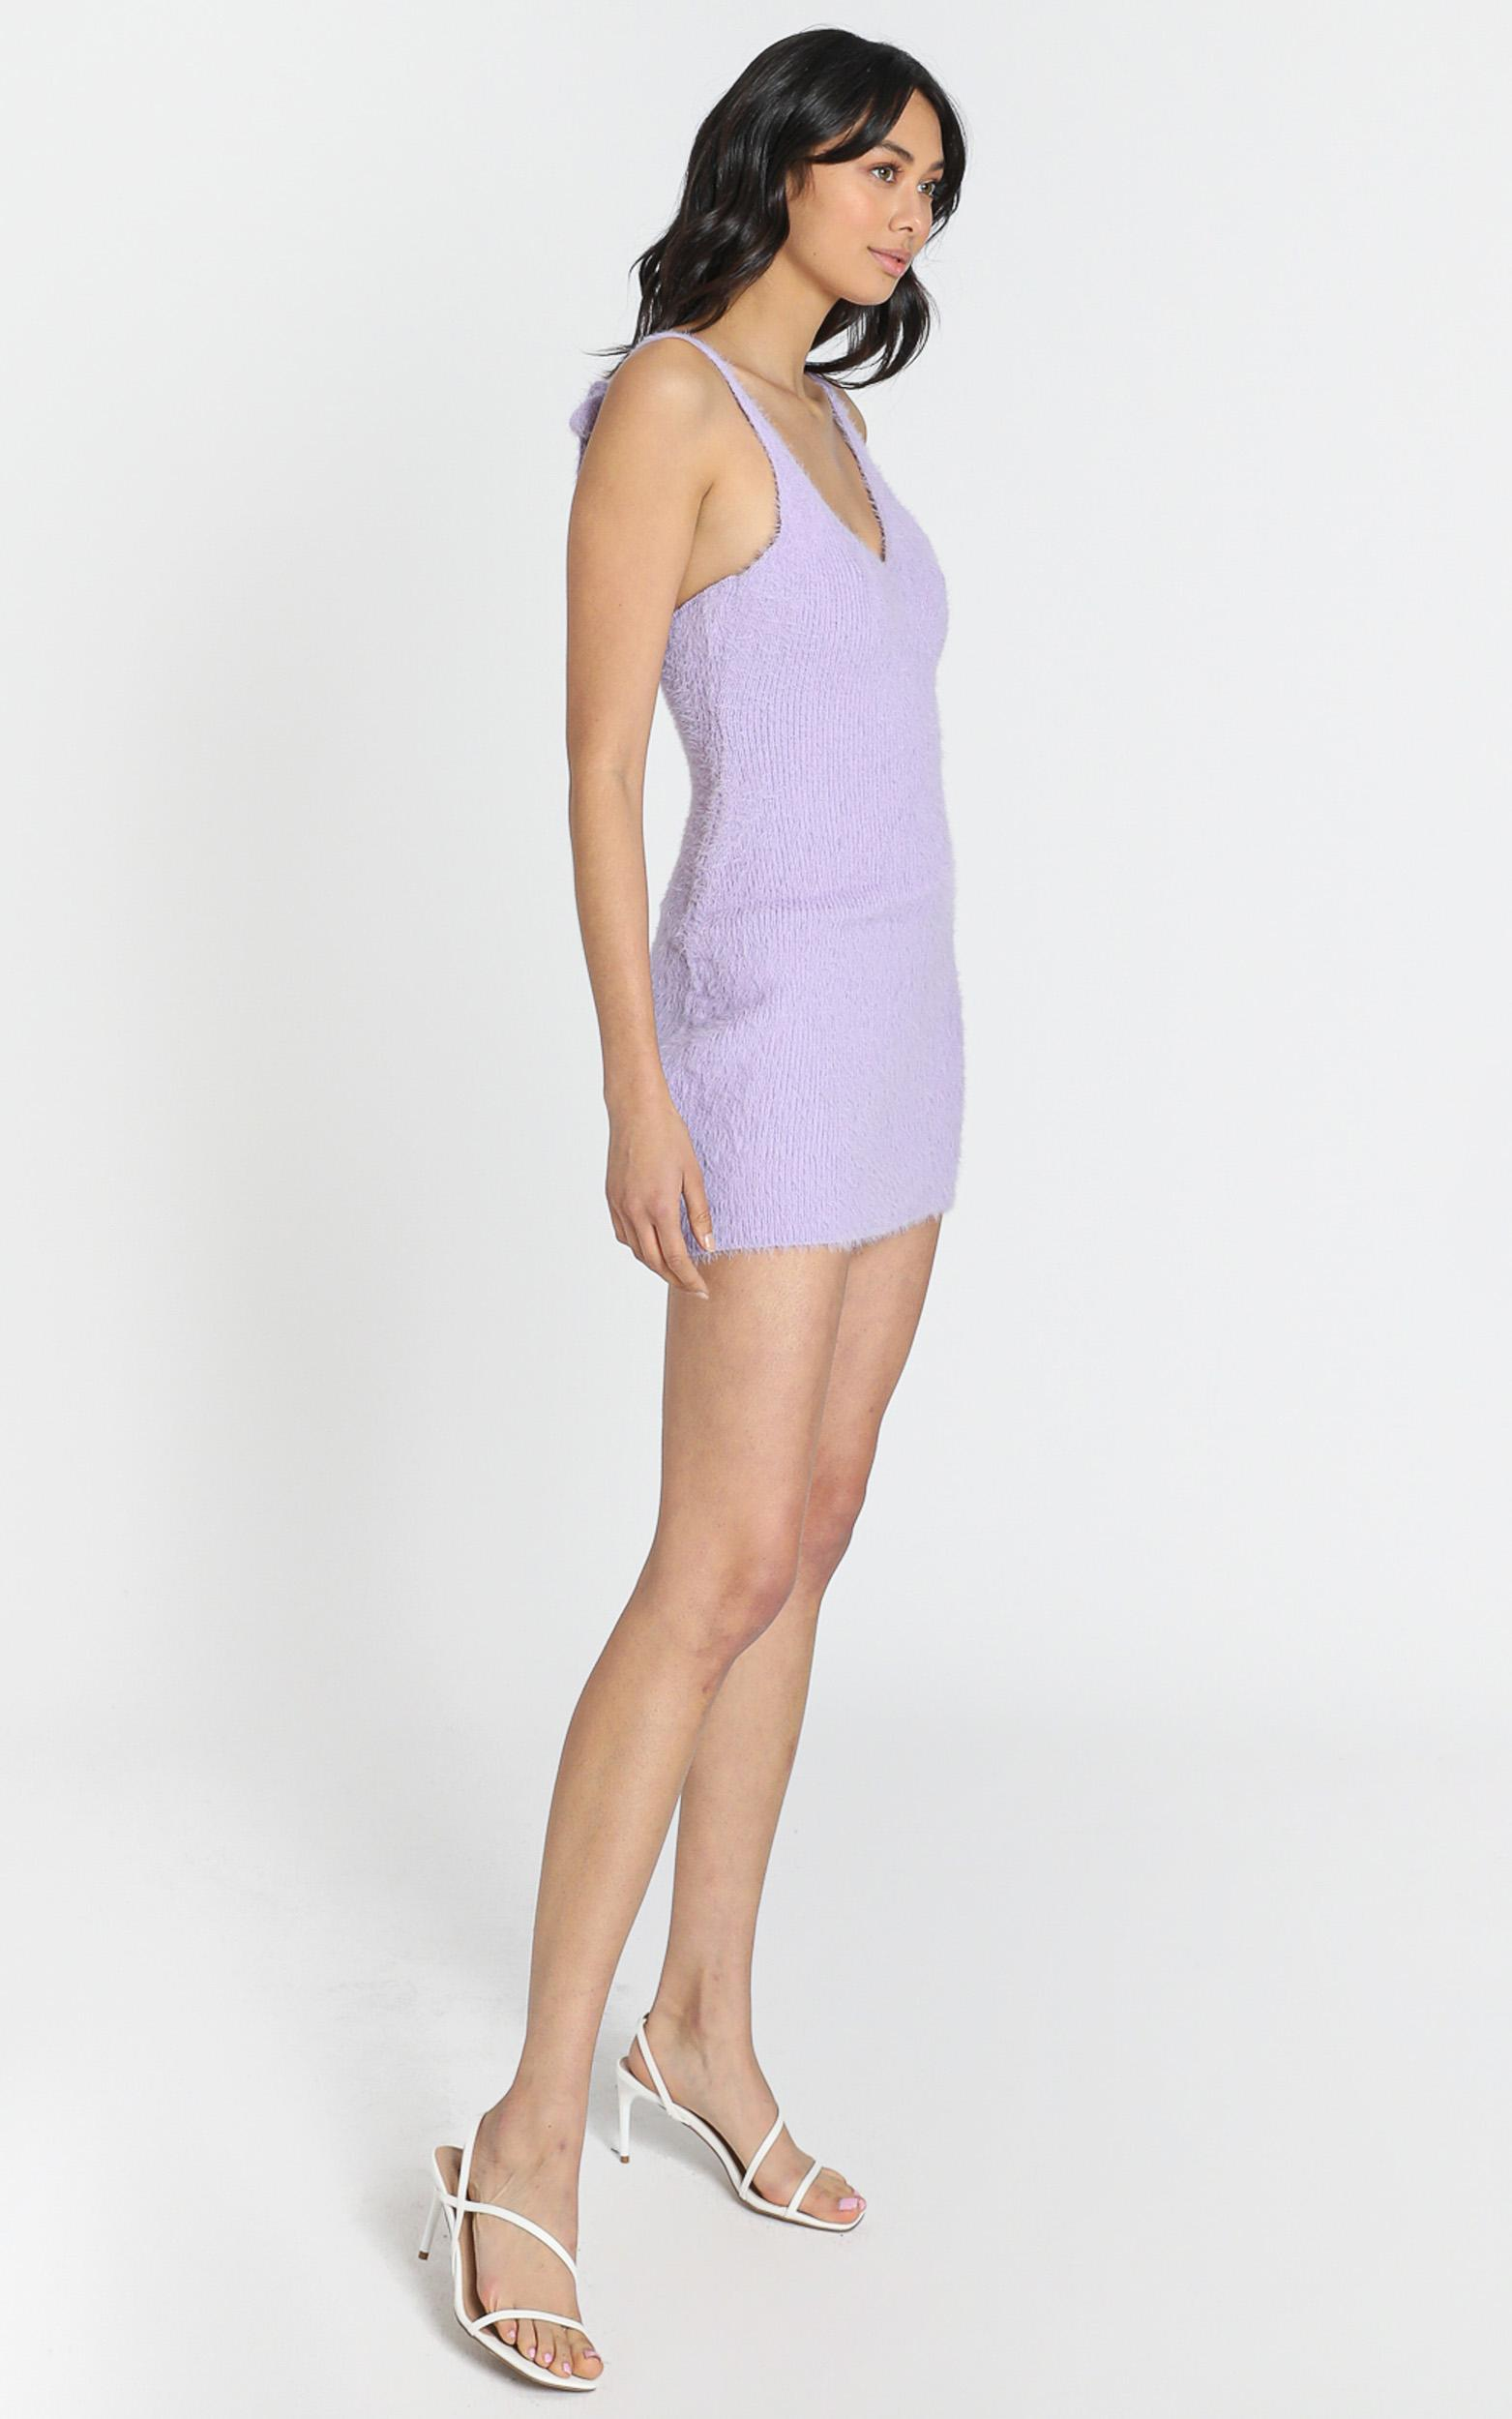 Leni Fluffy Knit Dress in Lilac - 8 (S), Purple, hi-res image number null